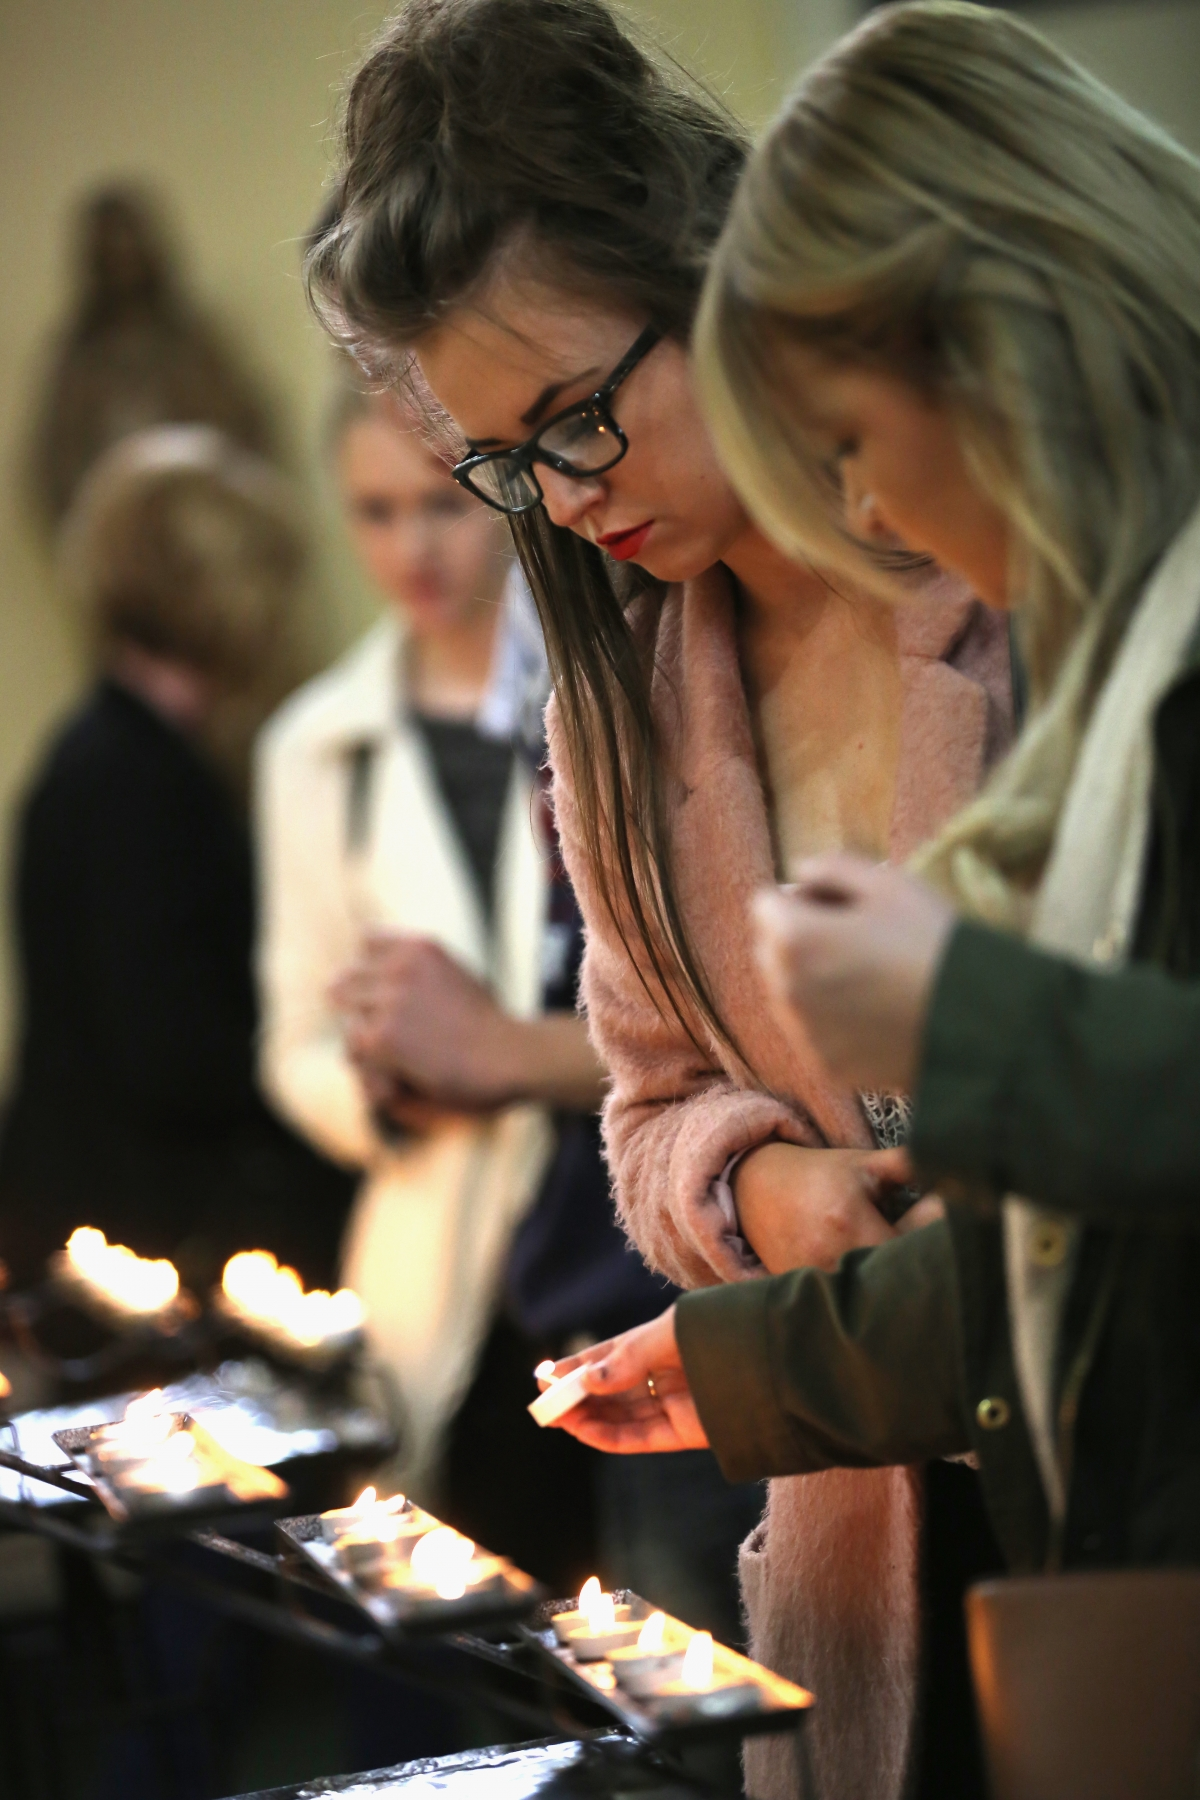 Mourners light candles at a mass for Ann Maguire at Corpus Christi Church, after the teacher was stabbed to death during class in Leeds